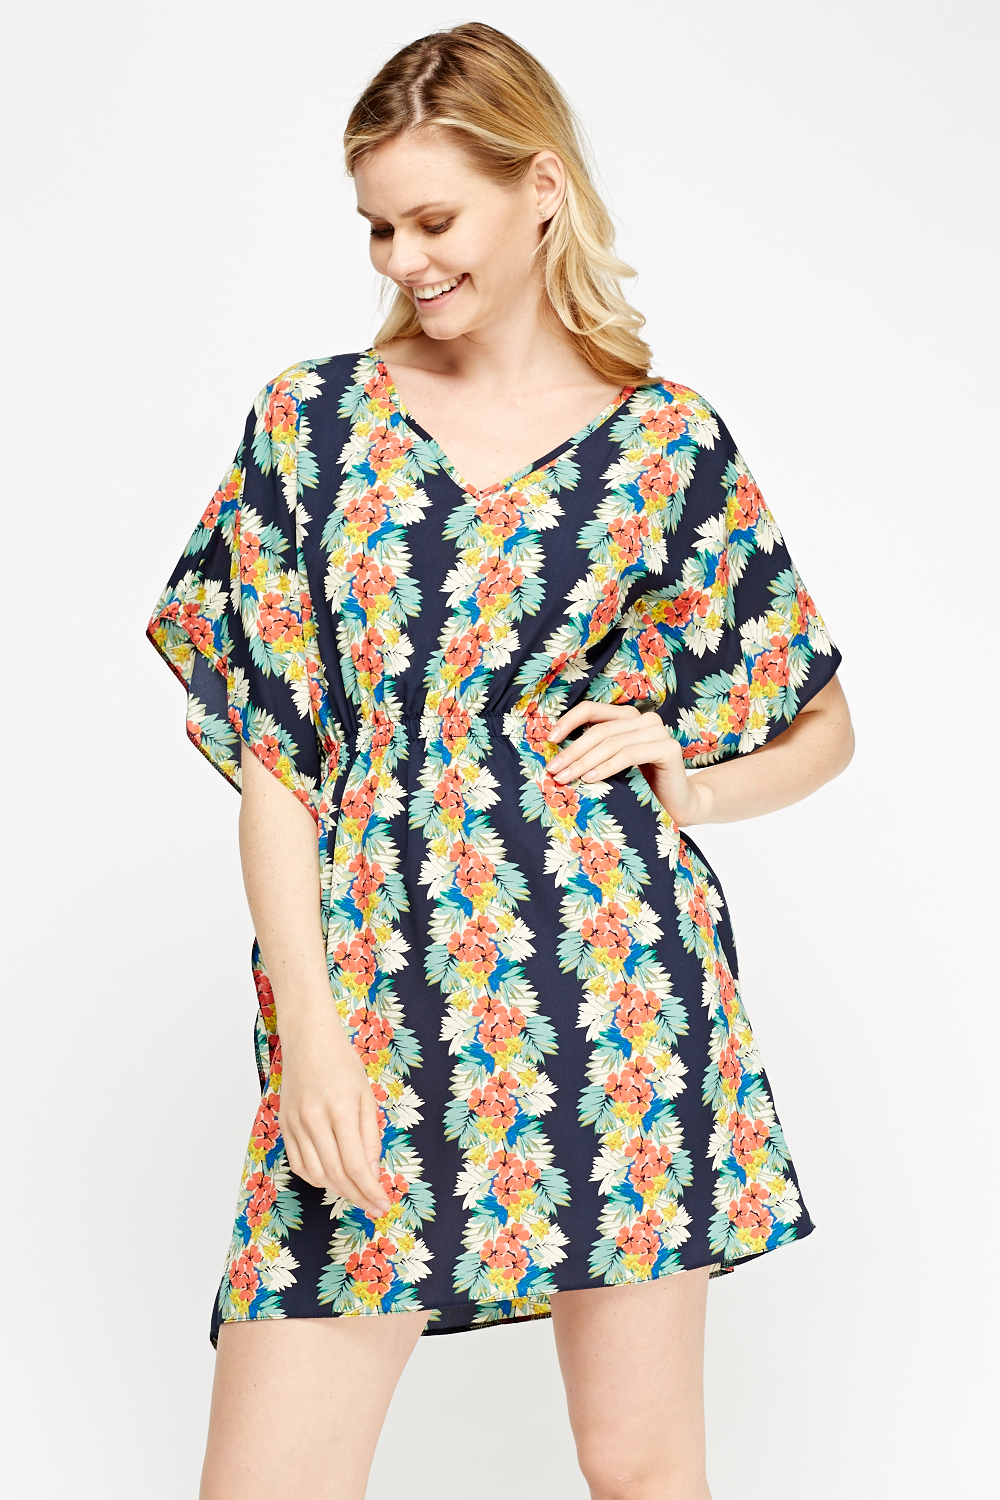 Floral Print Cover Up Dress Navy Multi Or Off White